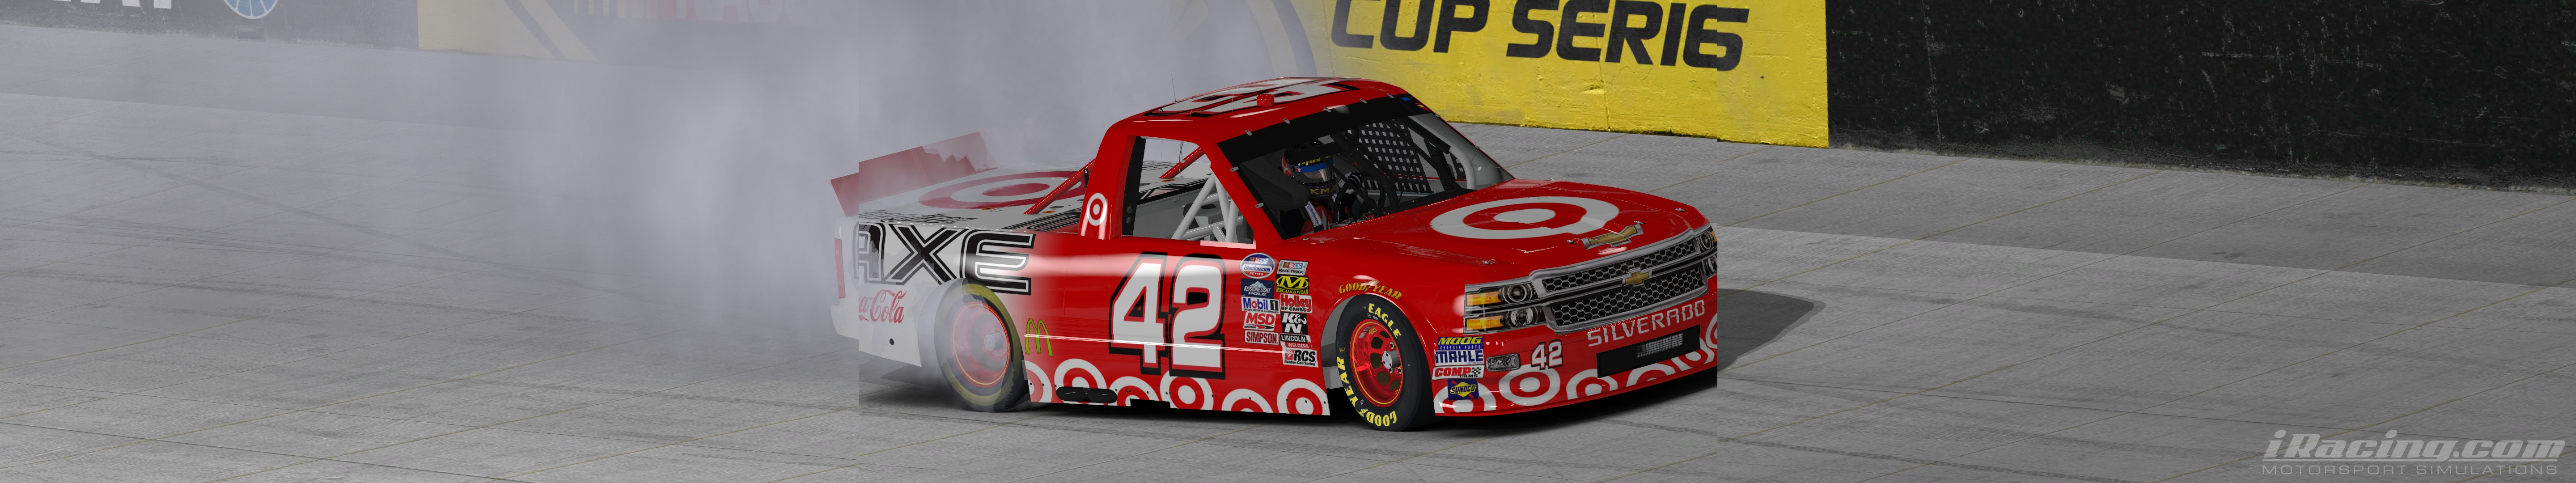 Target Truck by d Patterson2 - Trading Paints